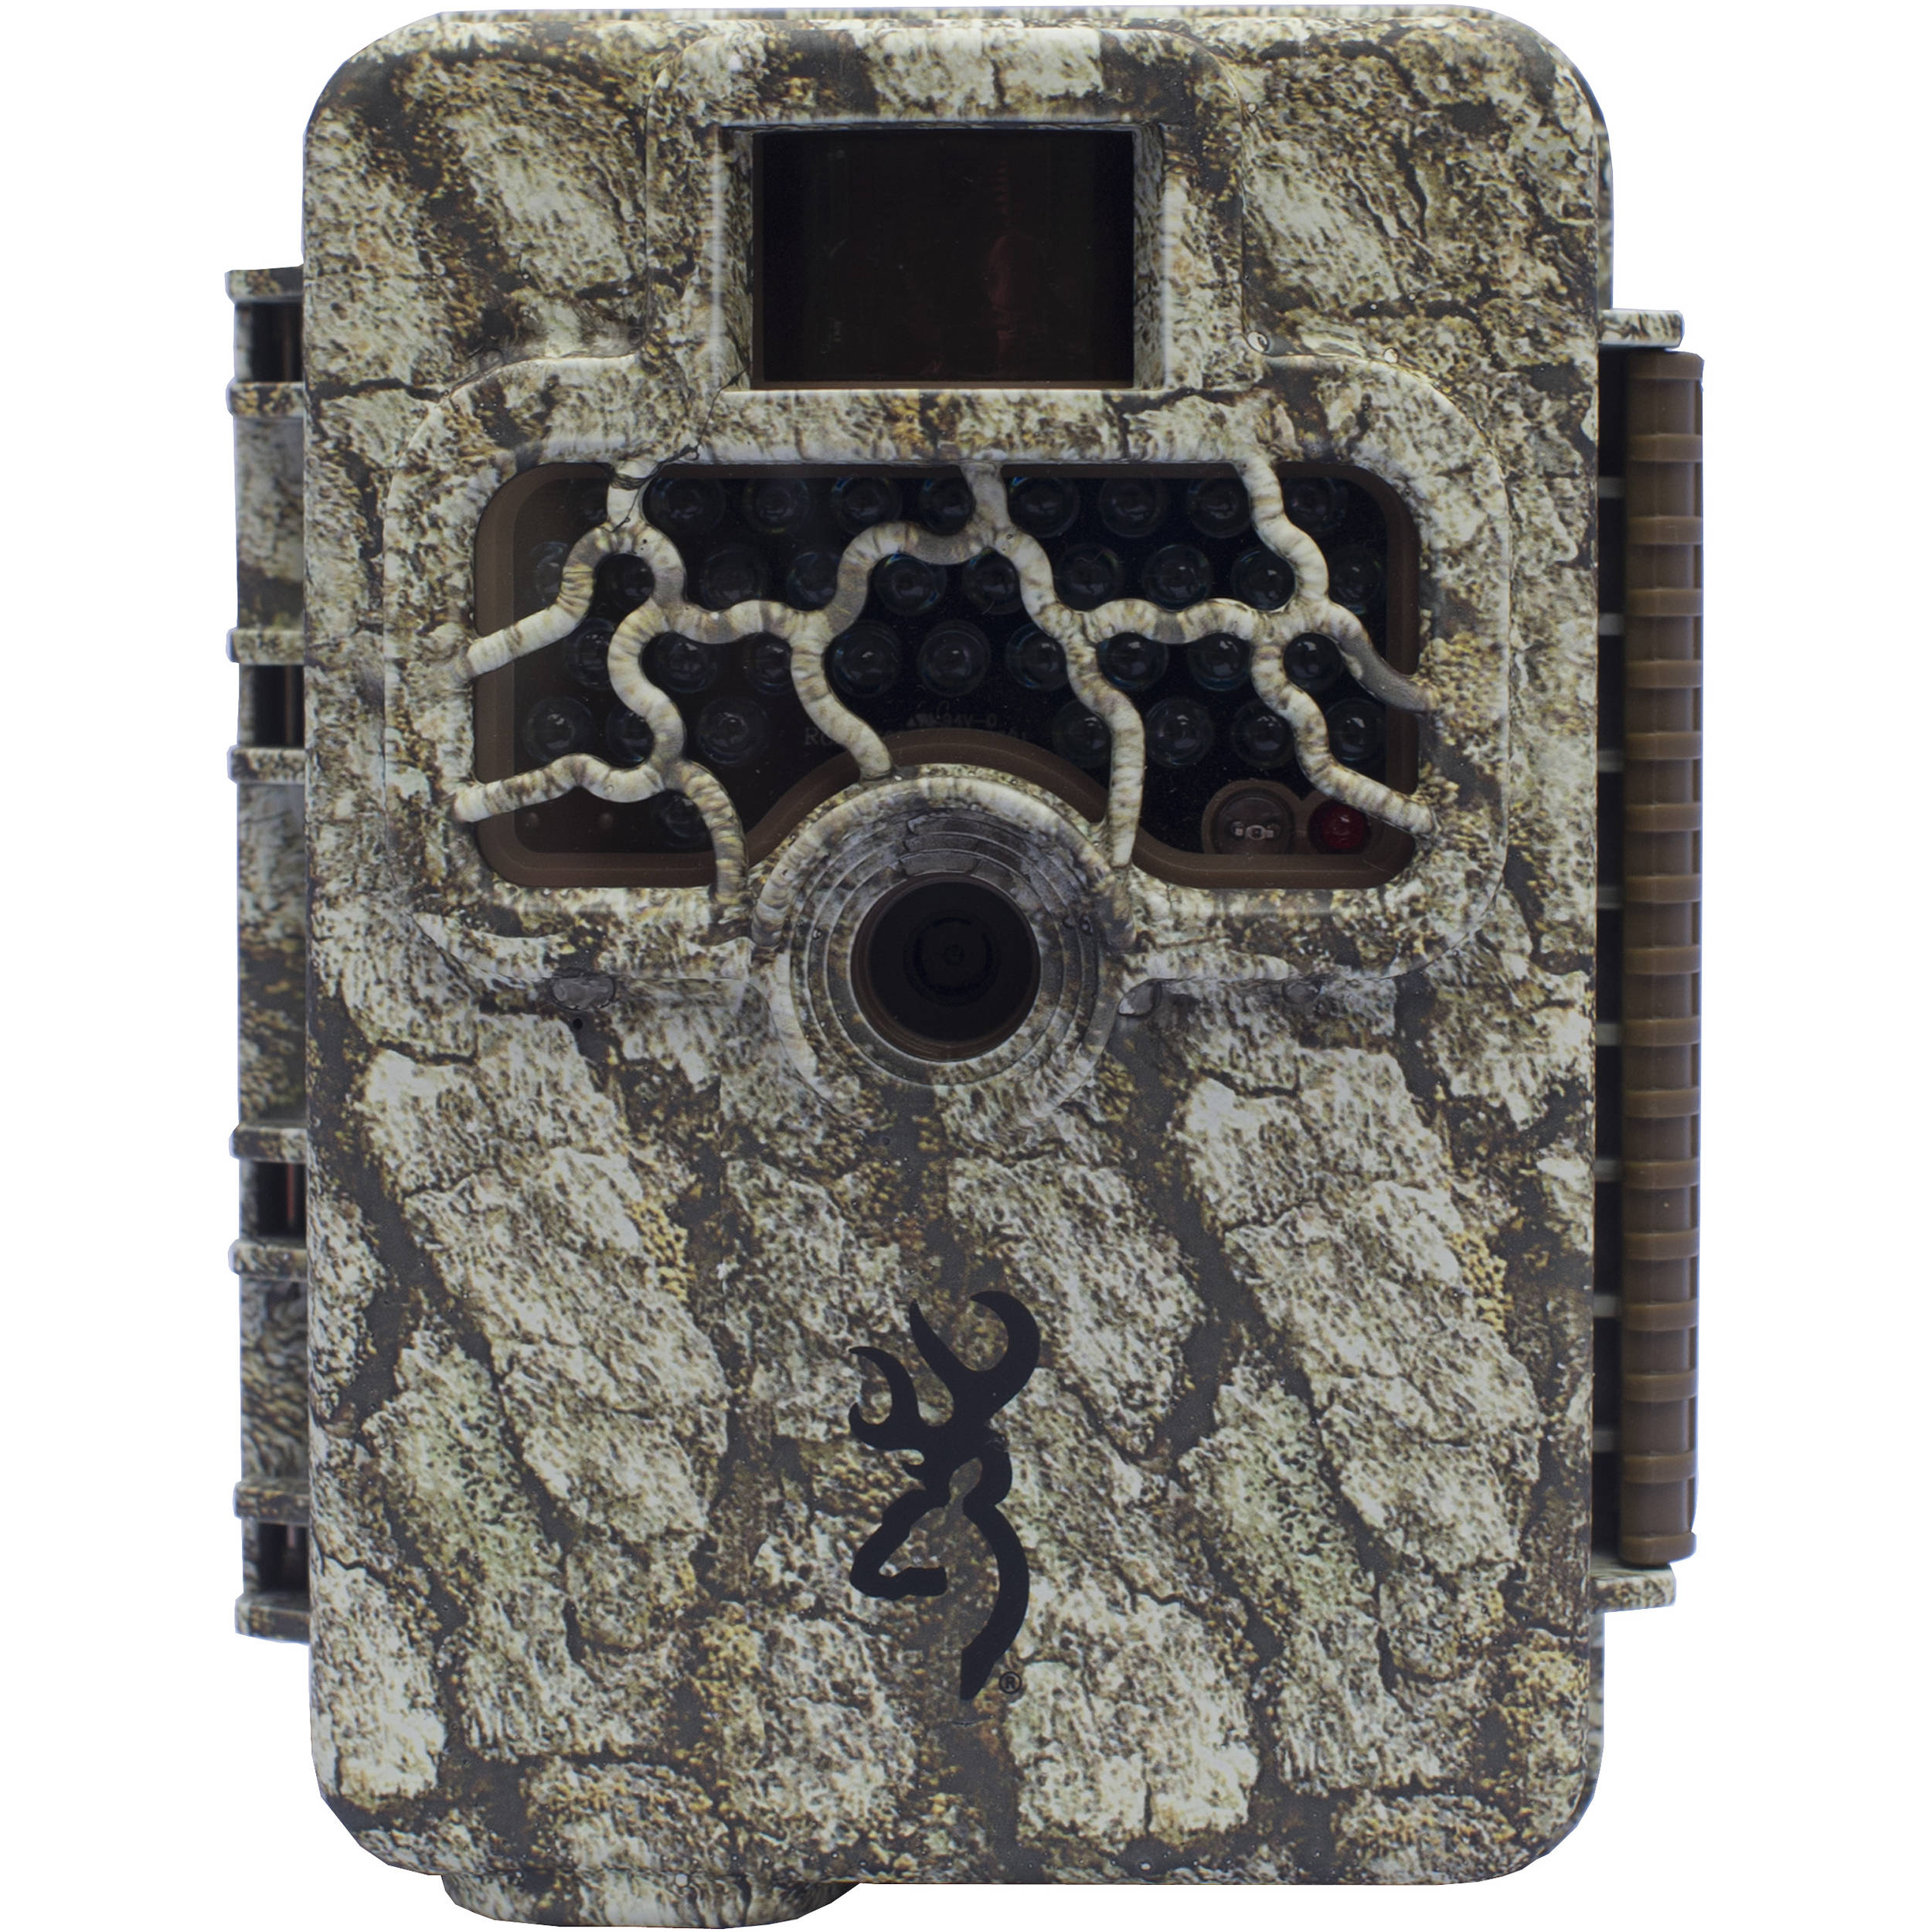 Browning Command Ops-14 Trail Camera BTC 4-14 B\u0026H Photo Video